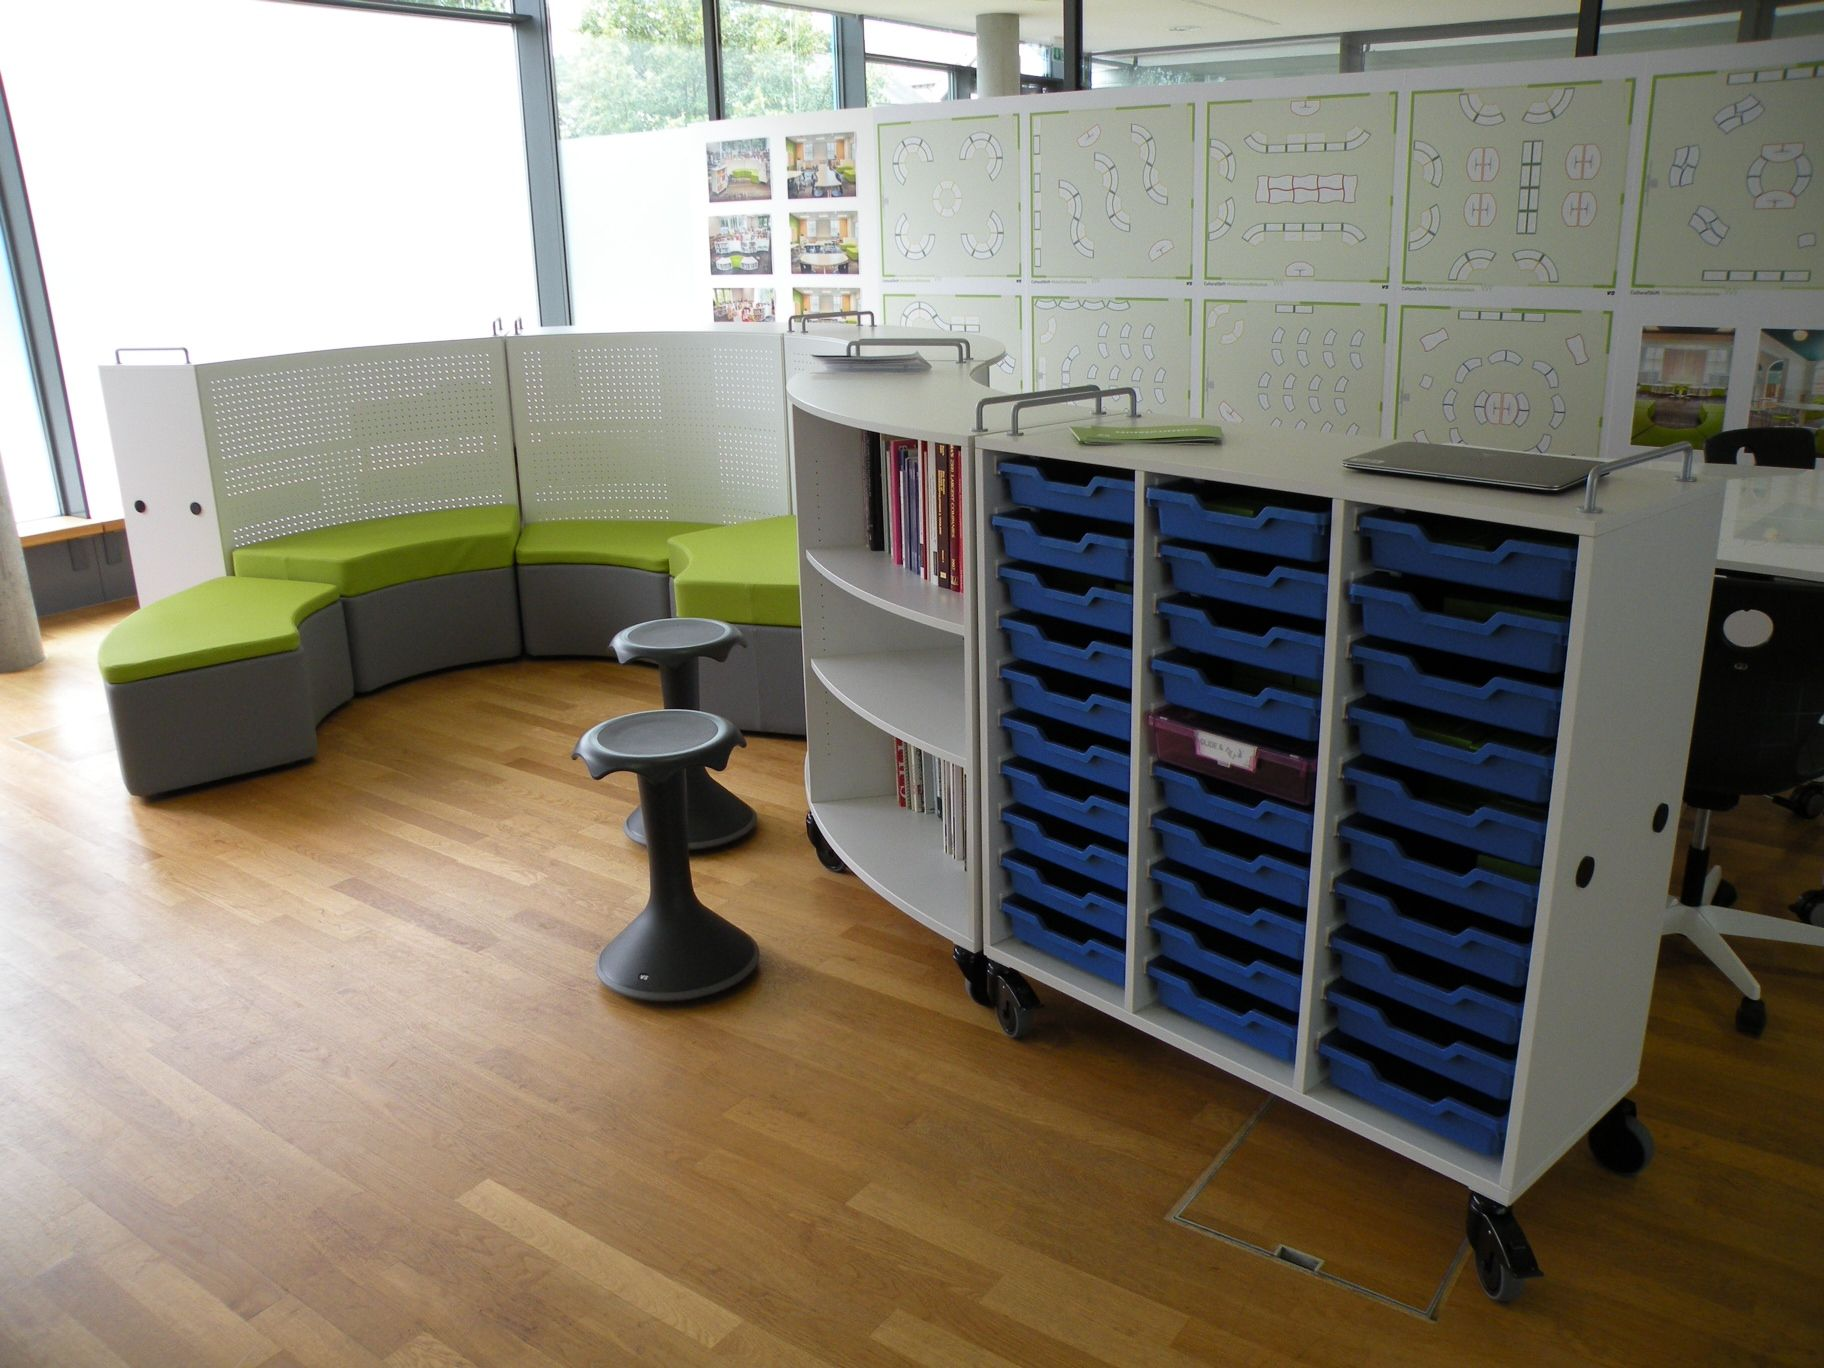 Modular Classroom Seating ~ Vs cultural shift classroom curved mobile storage and